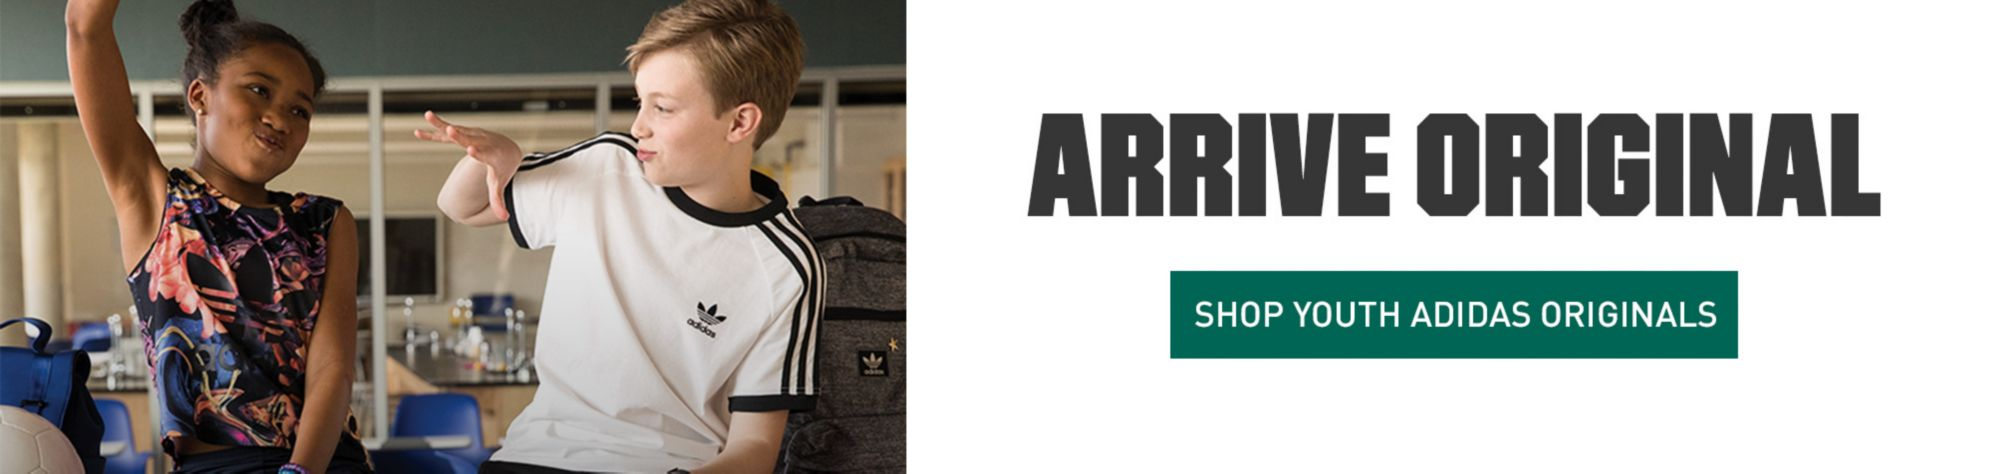 adidas Originals Youth Apparel